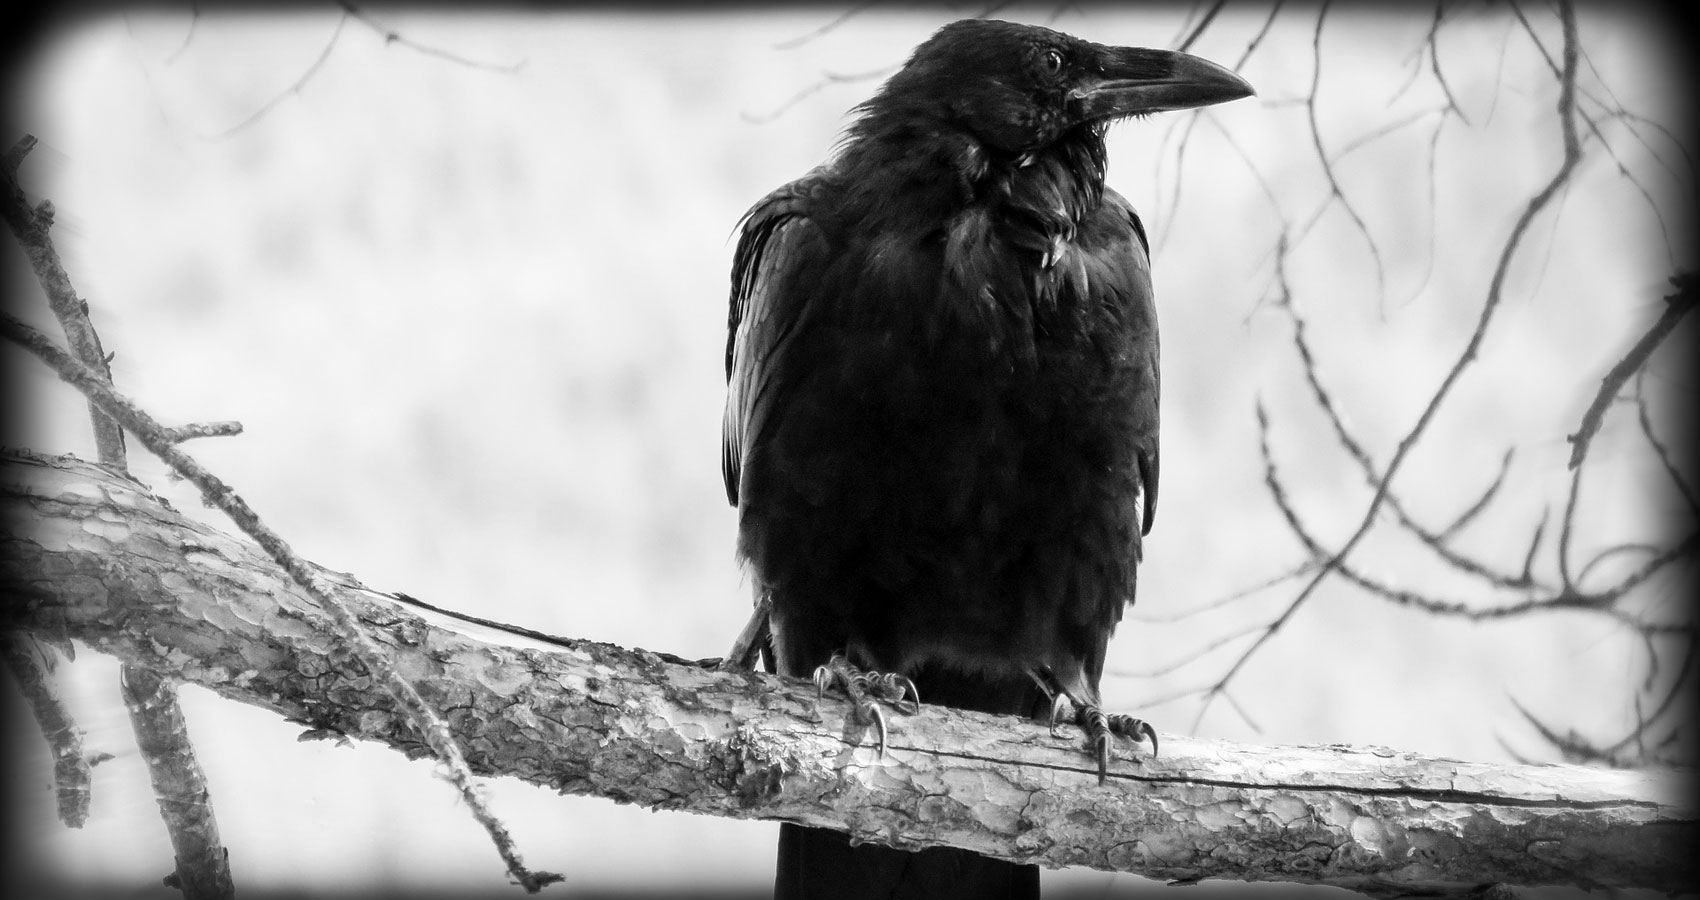 CAW written by Siva Wrightat Spillwords.com